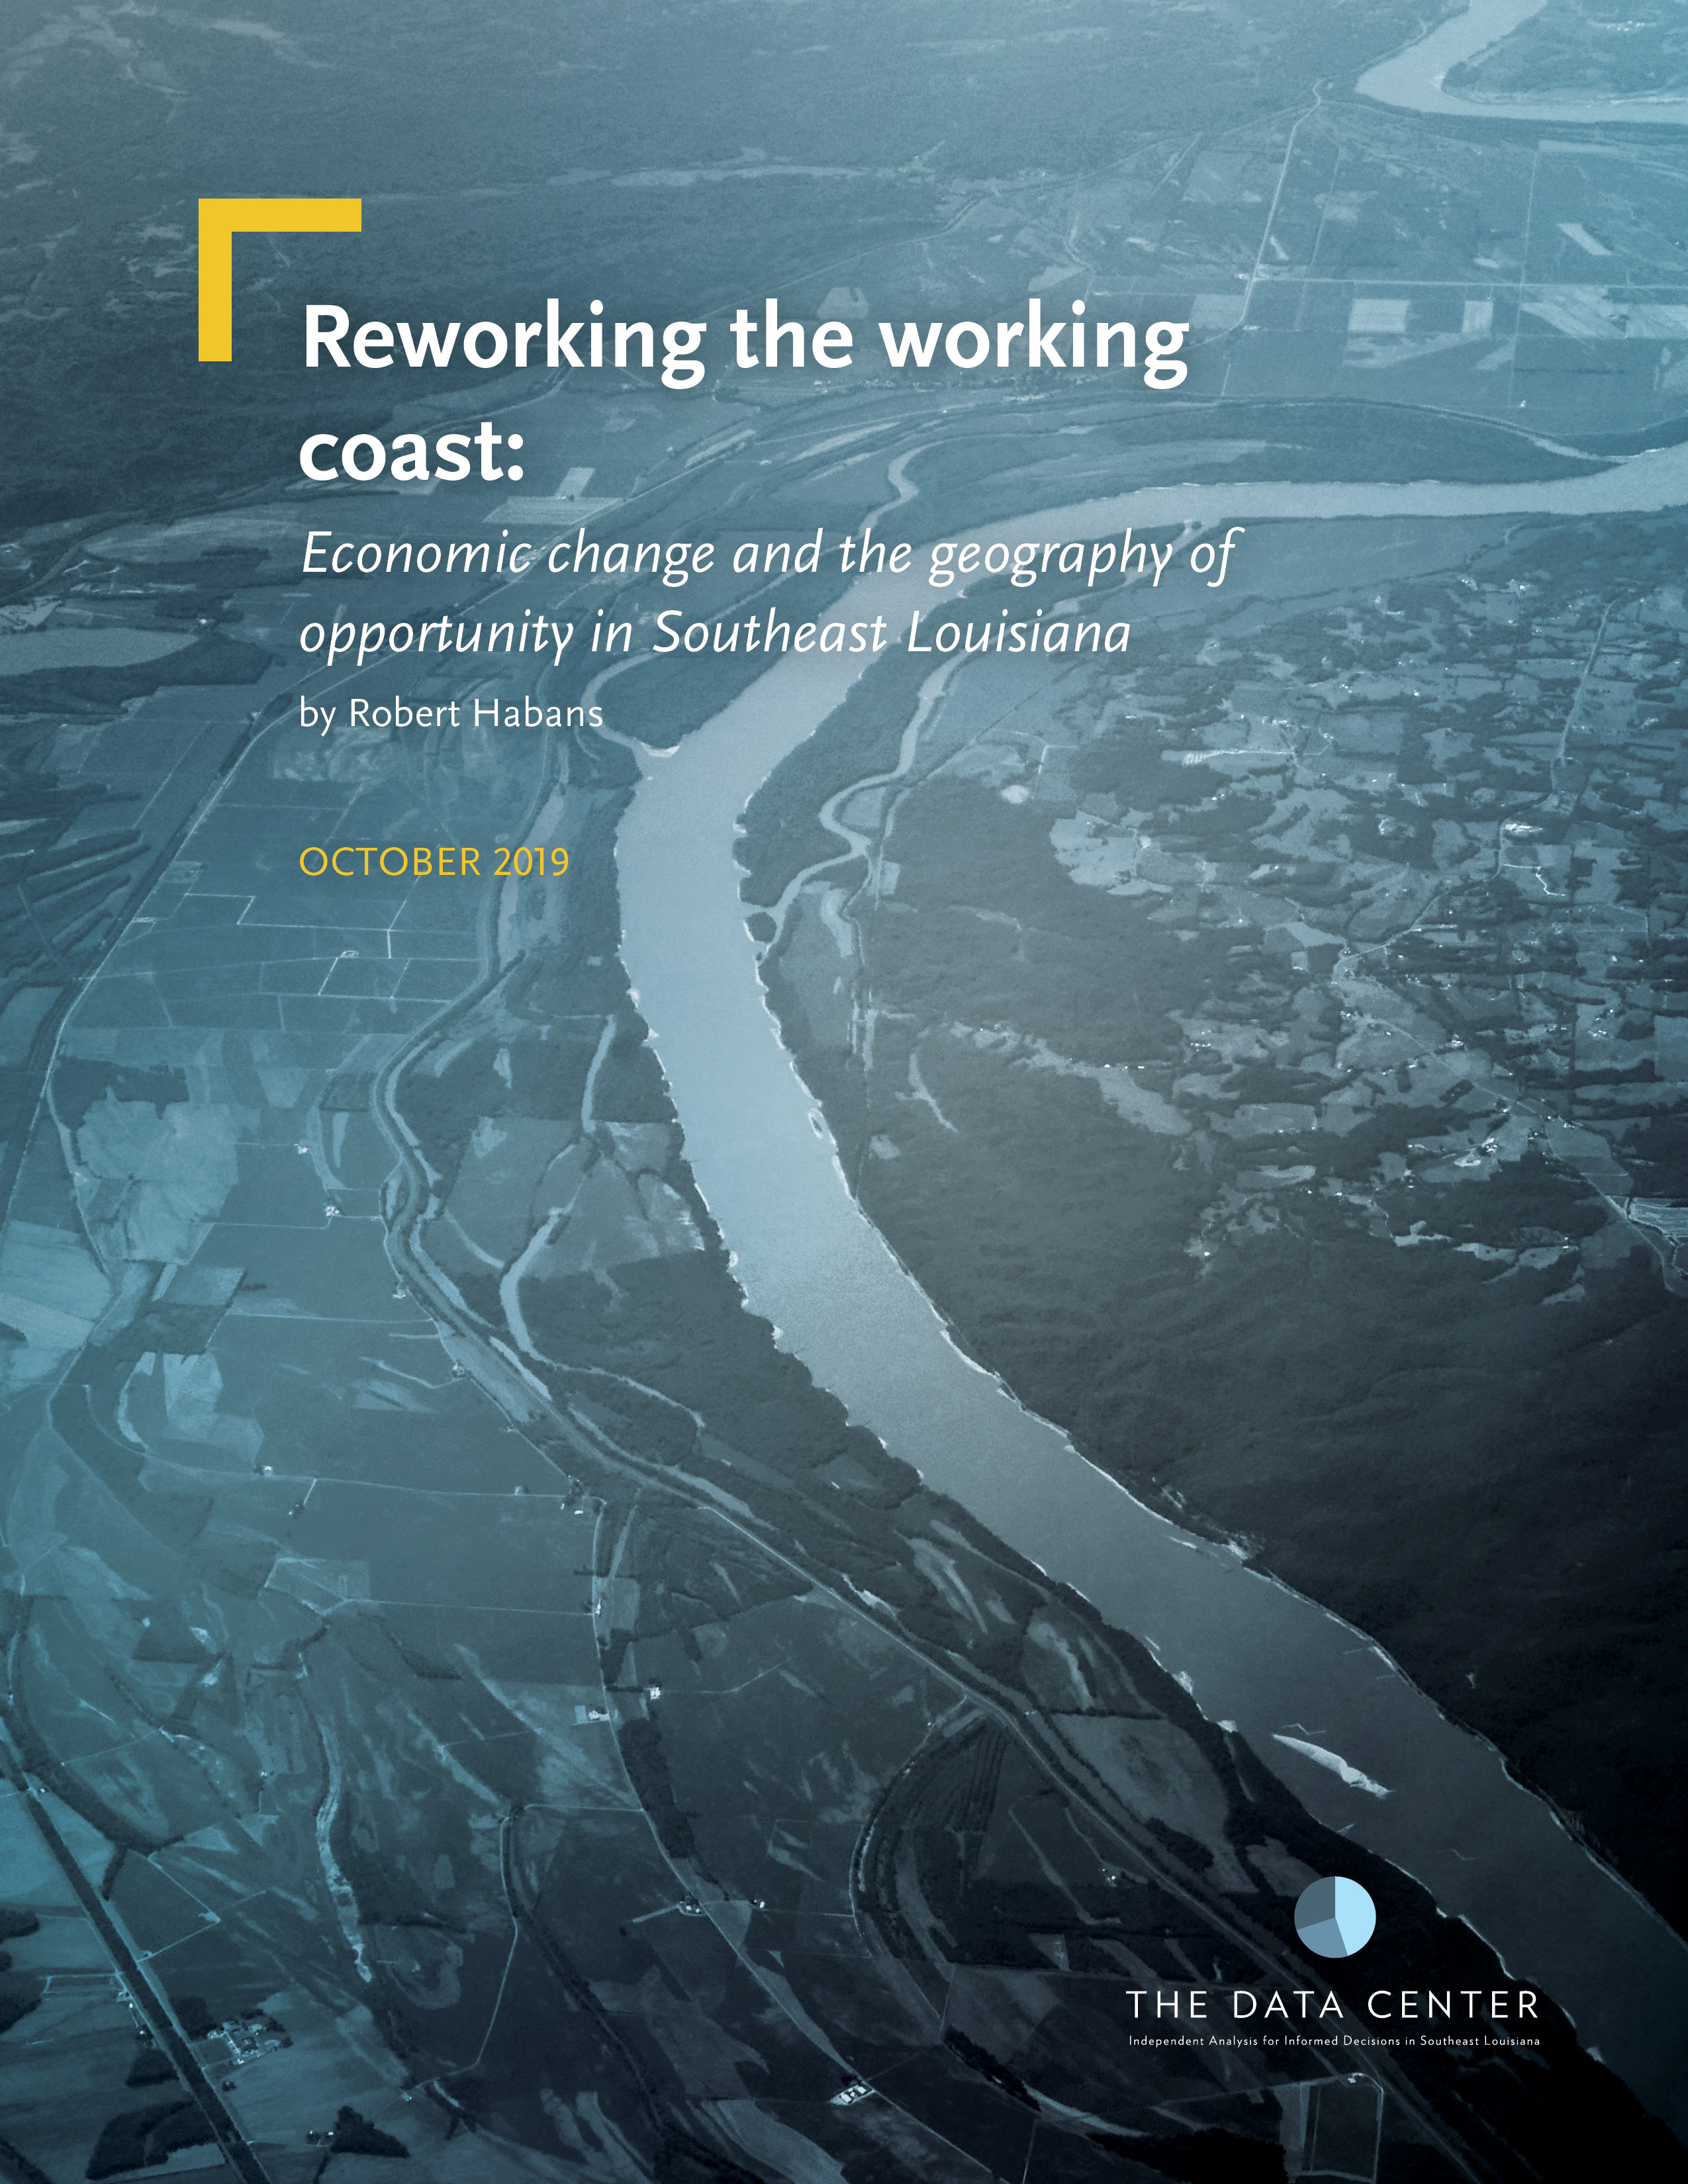 Reworking the working coast: Economic change and the geography of opportunity in Southeast Louisiana